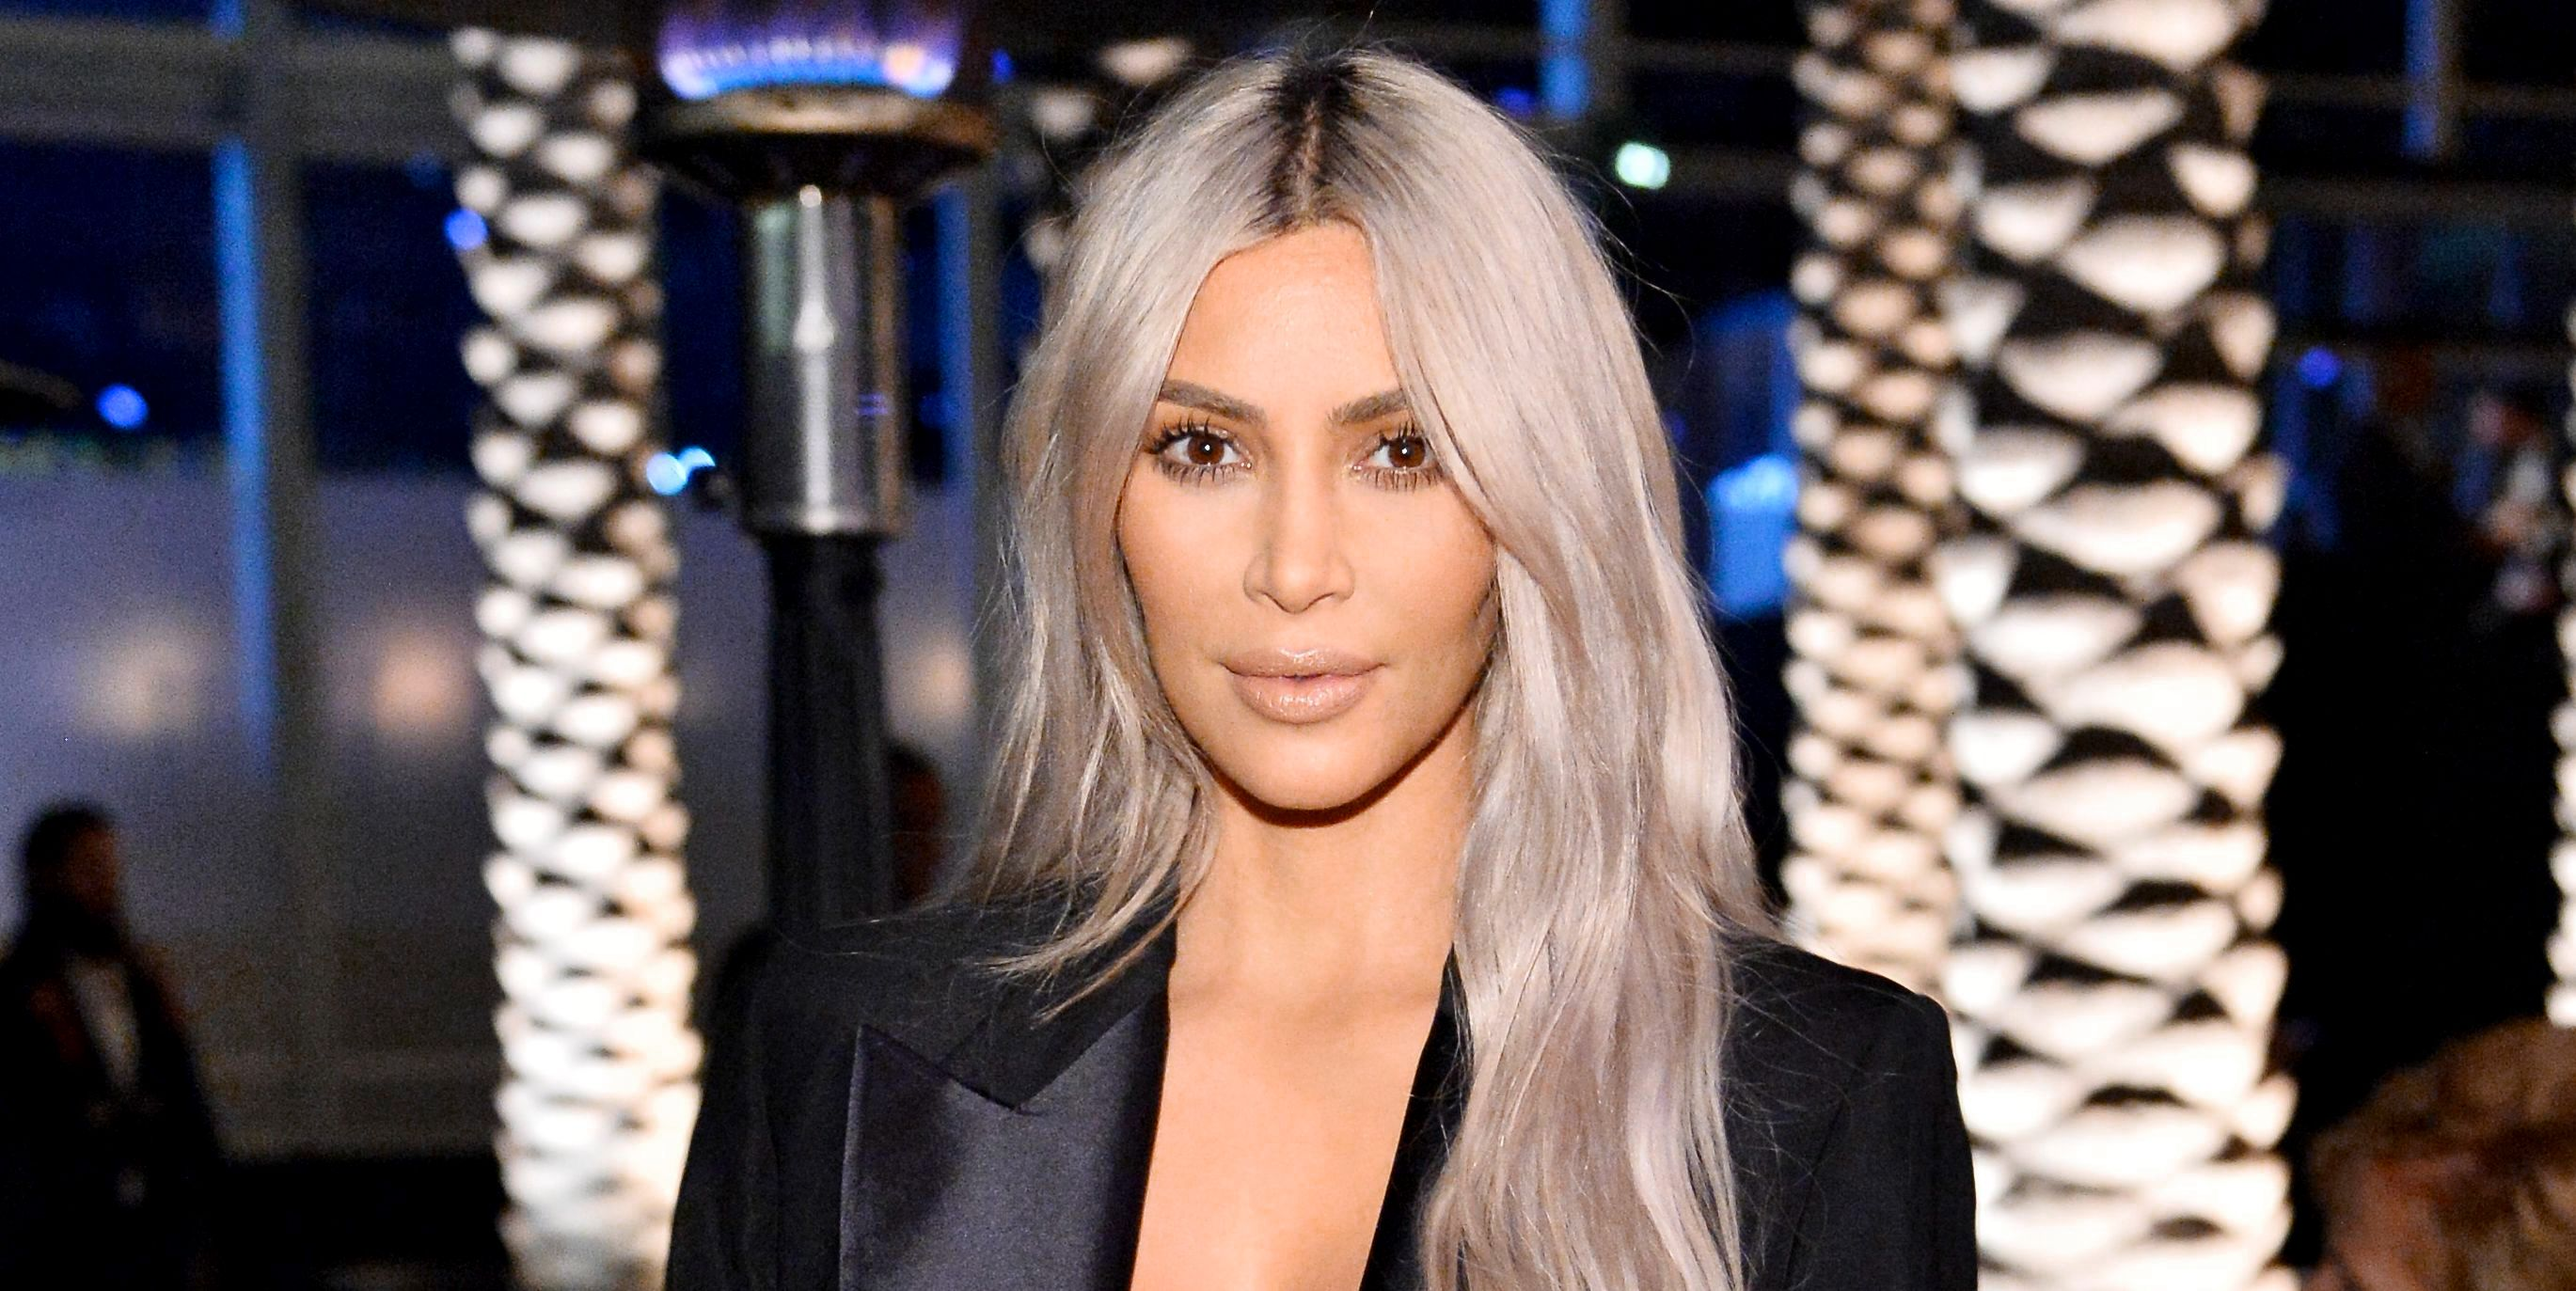 pictures This 10 Serum Is the Reason Kim Kardashian Doesnt Have a Single Wrinkle